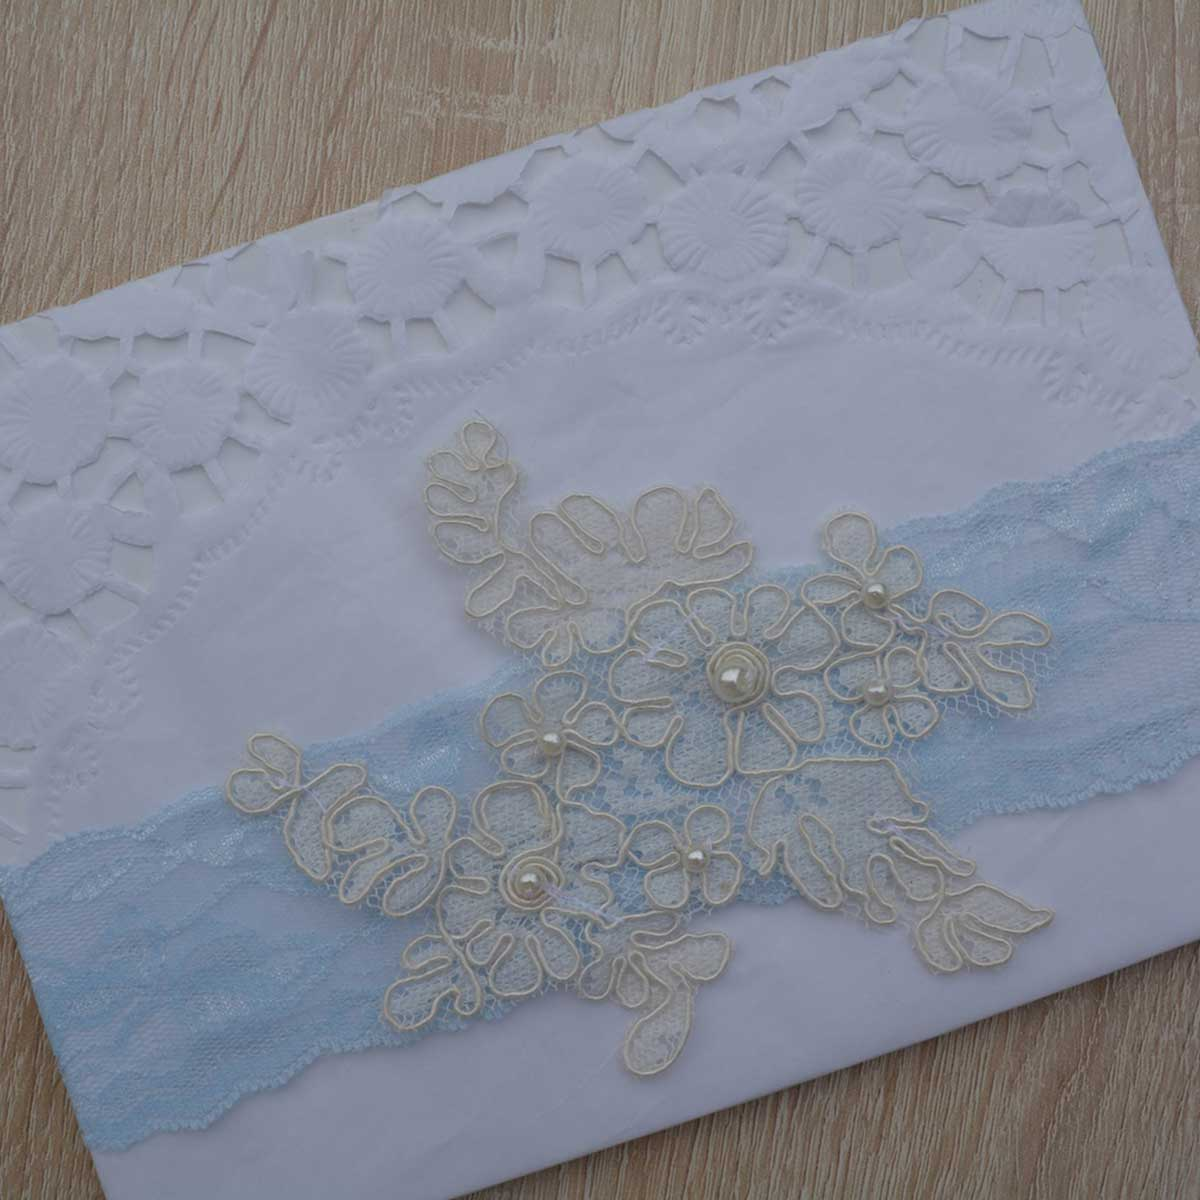 Pale Blue Bridal Garter With Ivory Flower Applique & Pearls - Wedding Garter - SuzannaM Designs